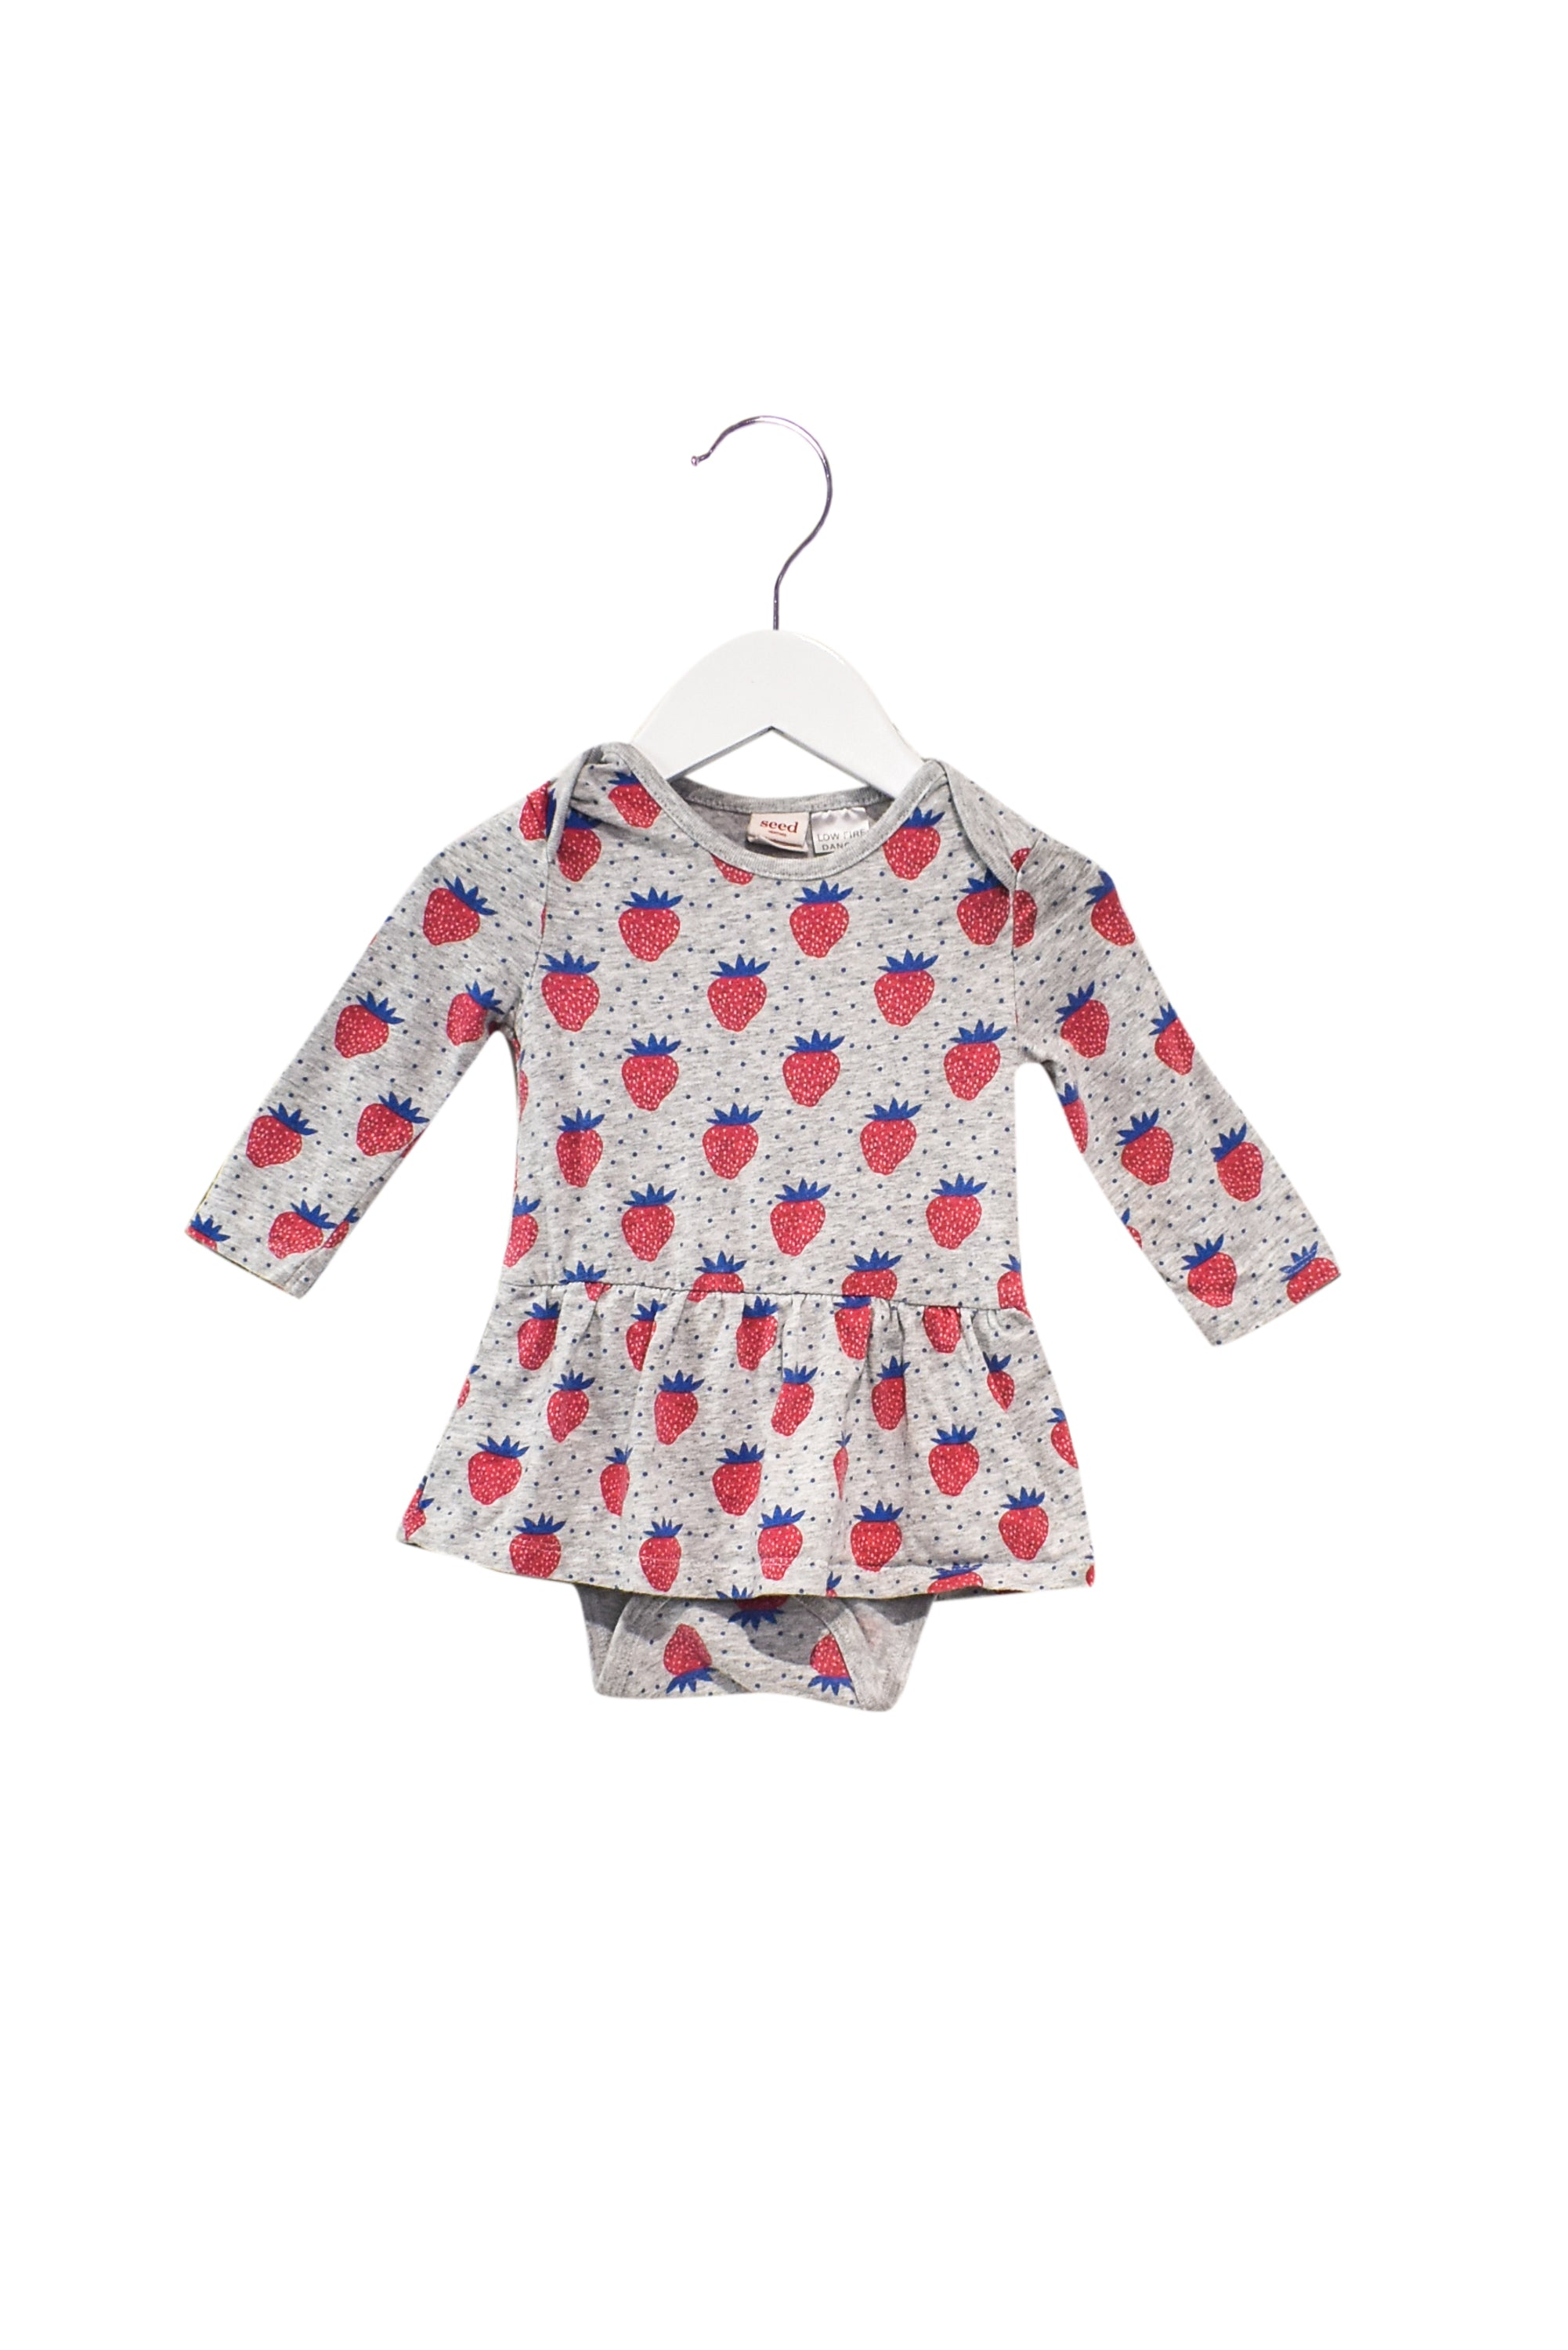 10028349 Seed Baby~Romper Dress 6-12M at Retykle